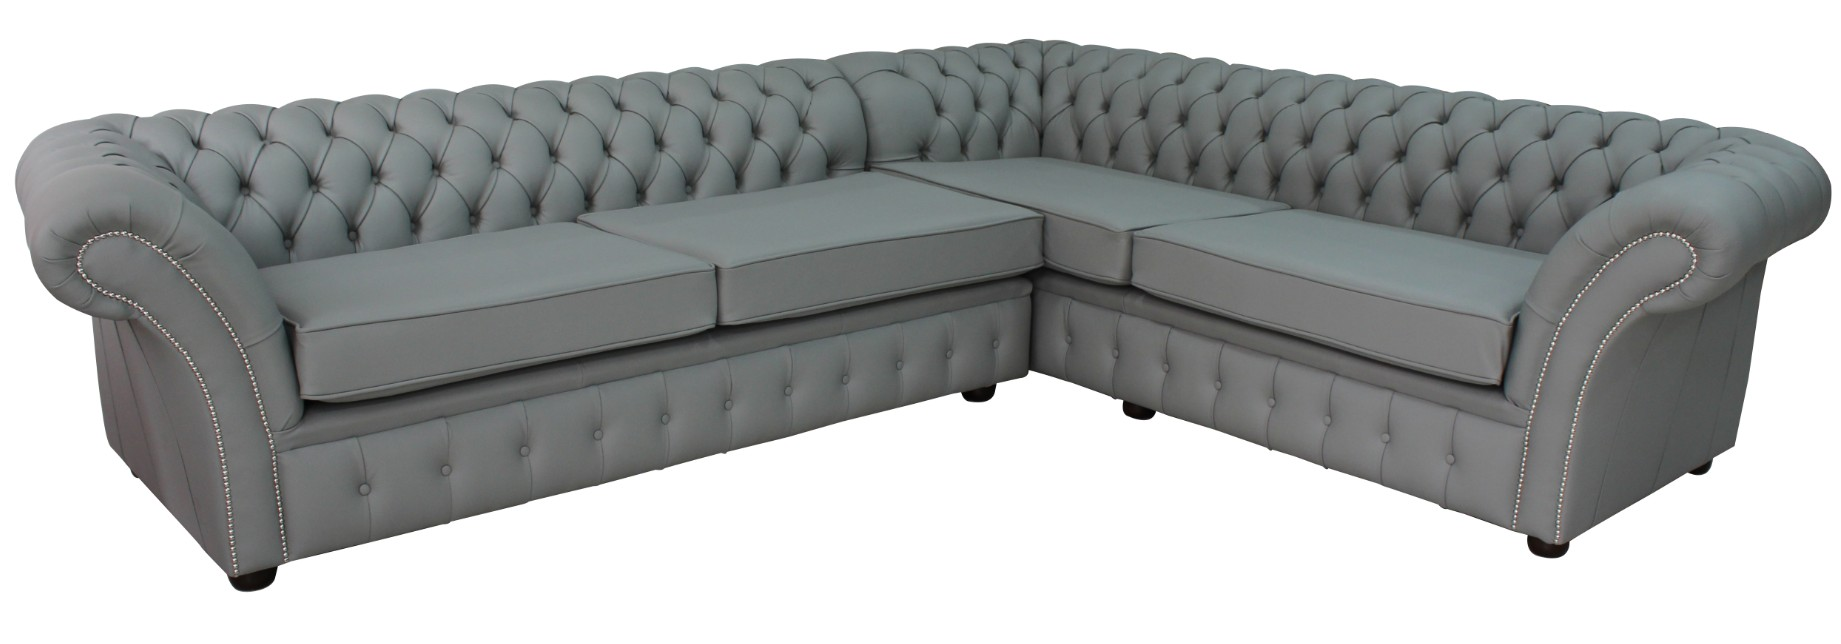 Chesterfield Balmoral Square Corner Sofa Unit Cushioned 3